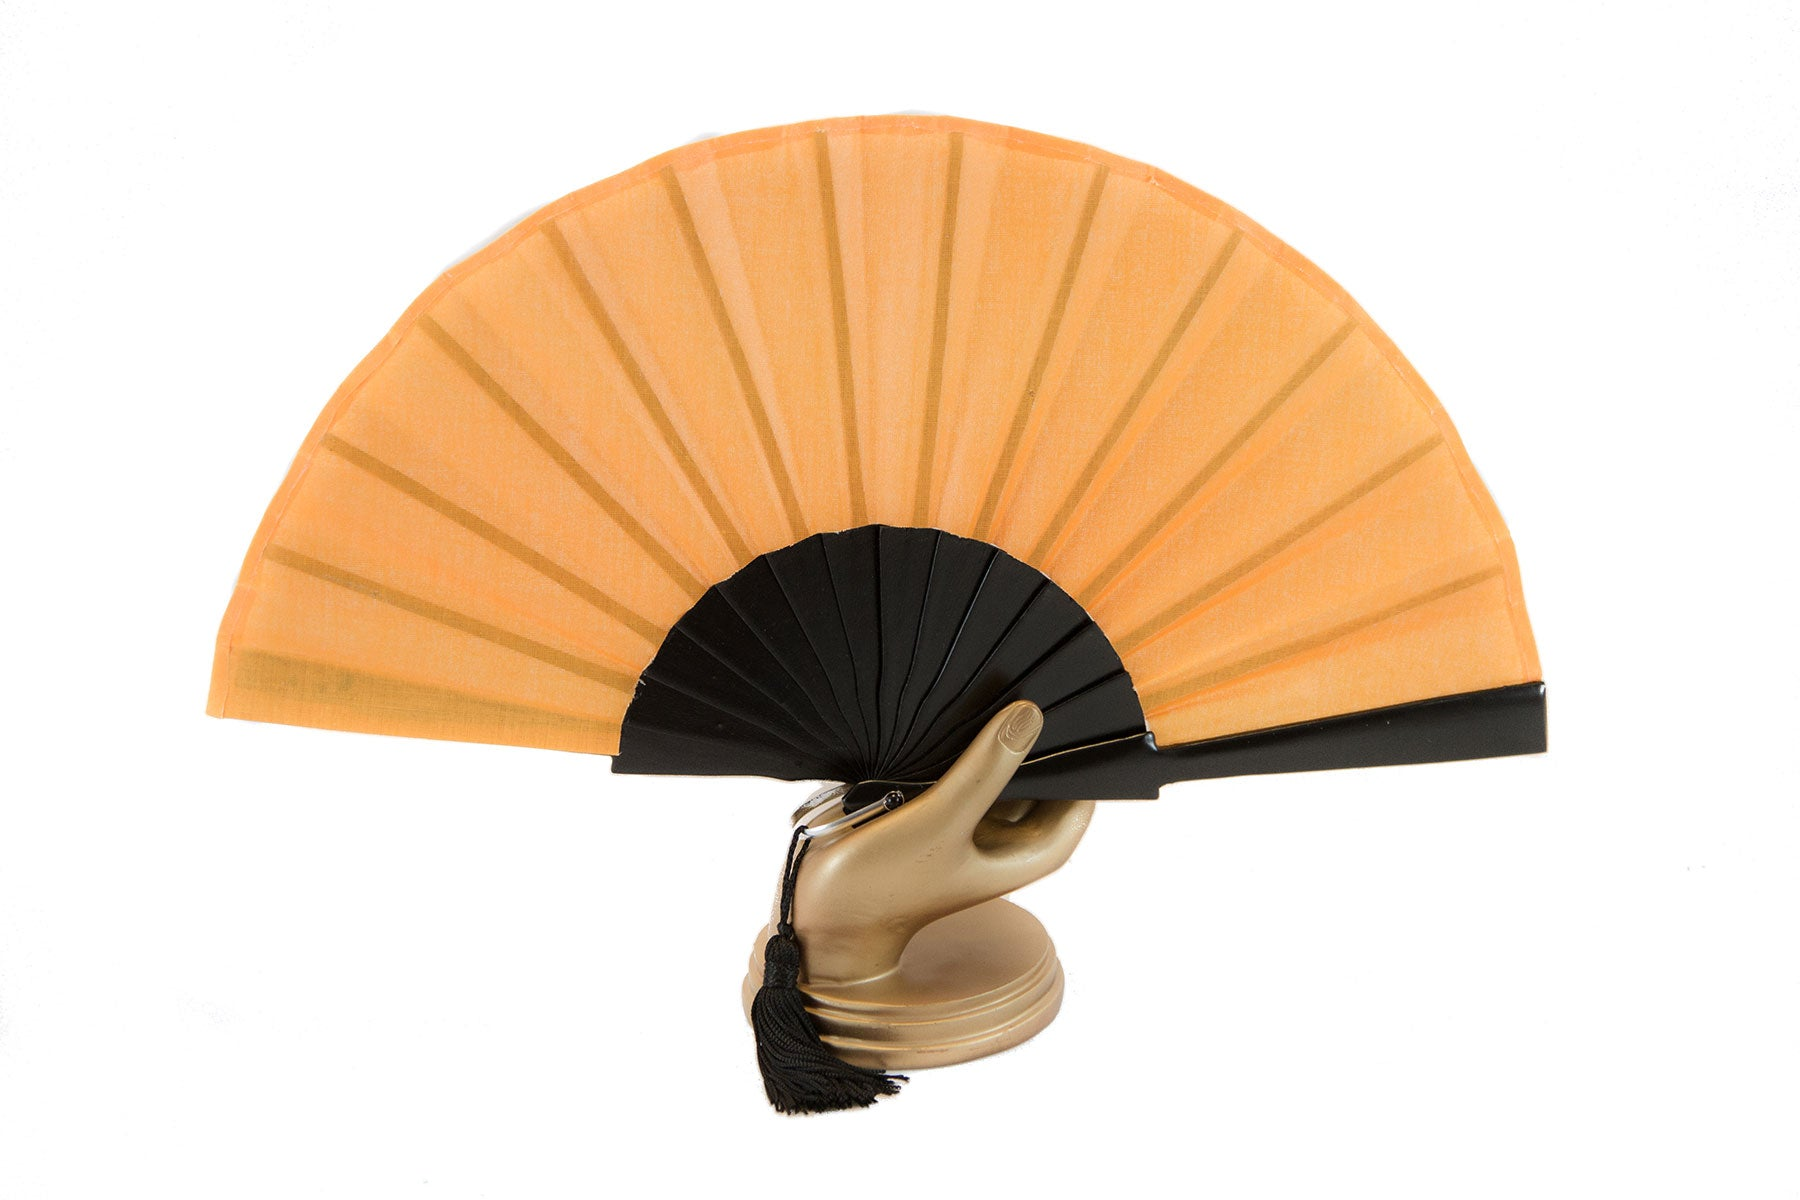 Orange Glastonbury festival hand fan